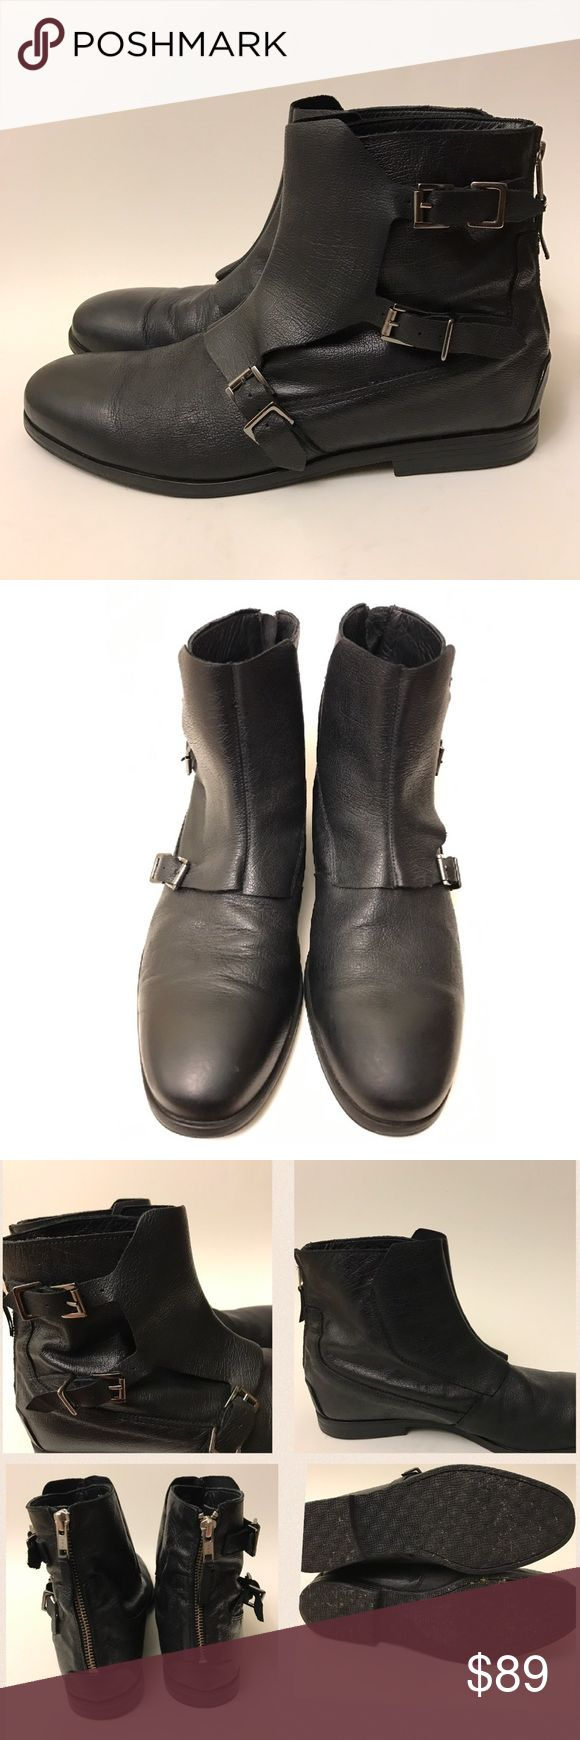 Zara Man Leather Ankle Boots Soft leather black ankle boots with 3 buckles. EU Size 45 / US Size 12 Zara Shoes Boots